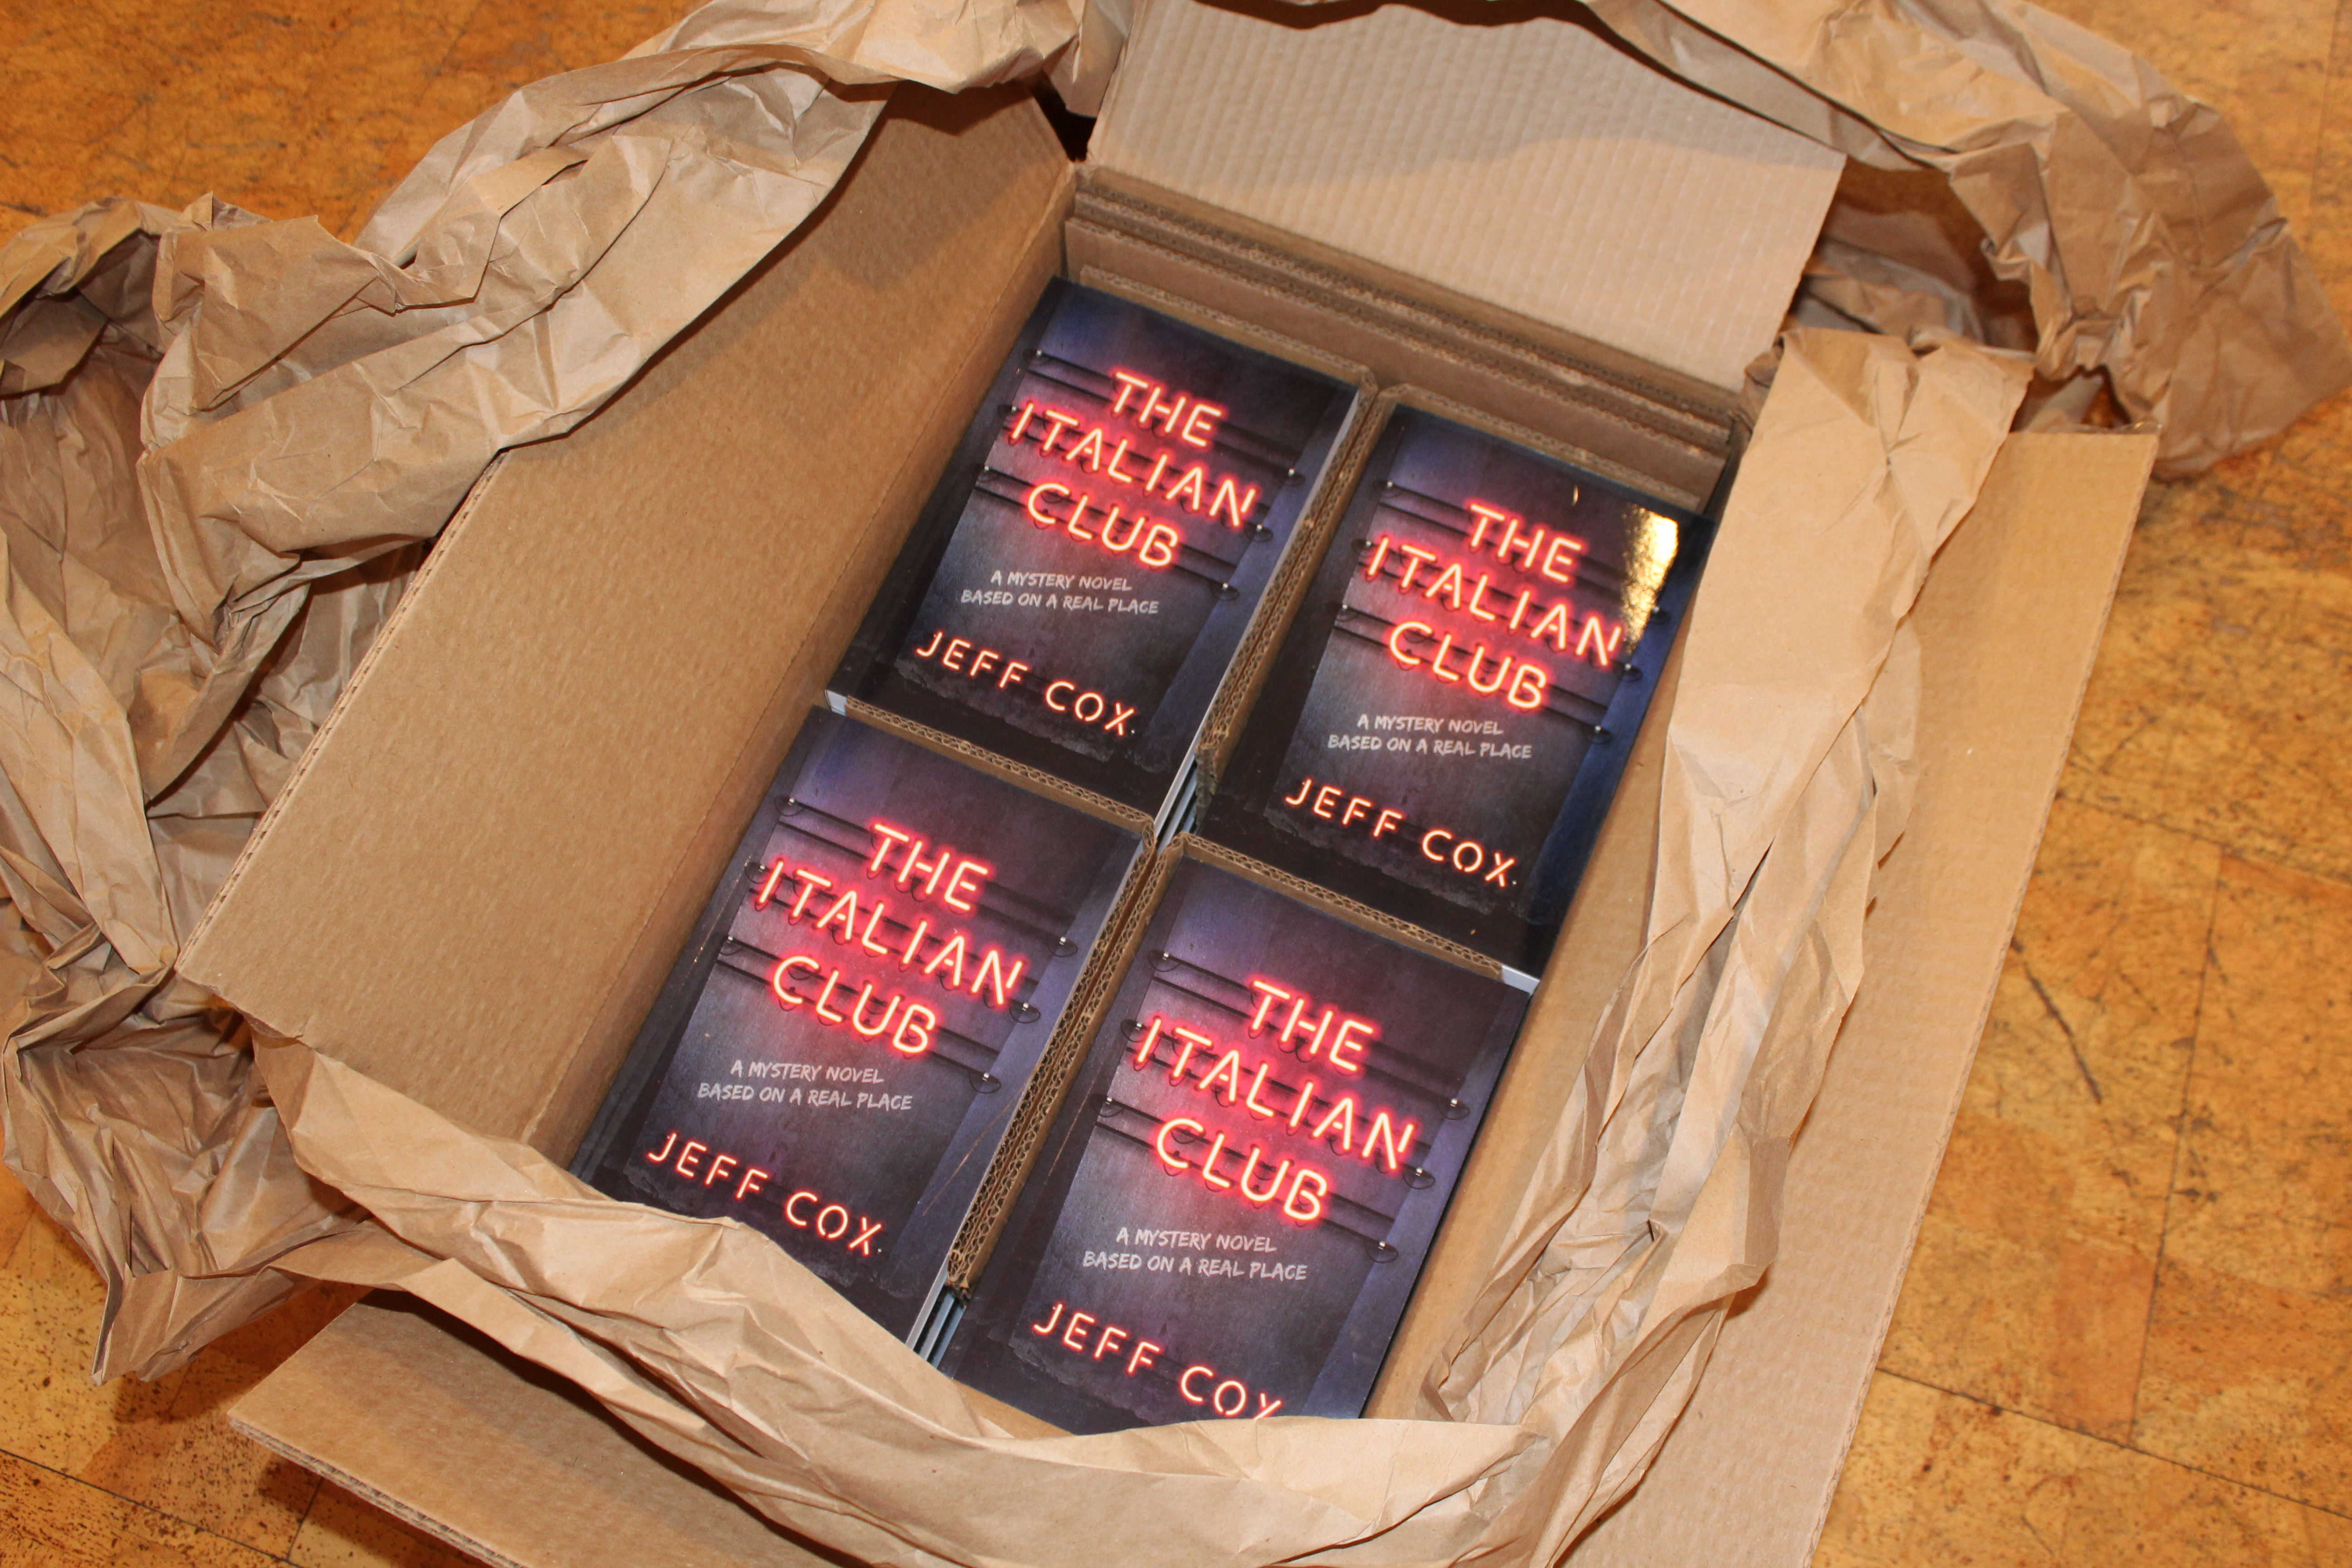 A case of copies of the new novel, The Italian Club, by Jeff Cox